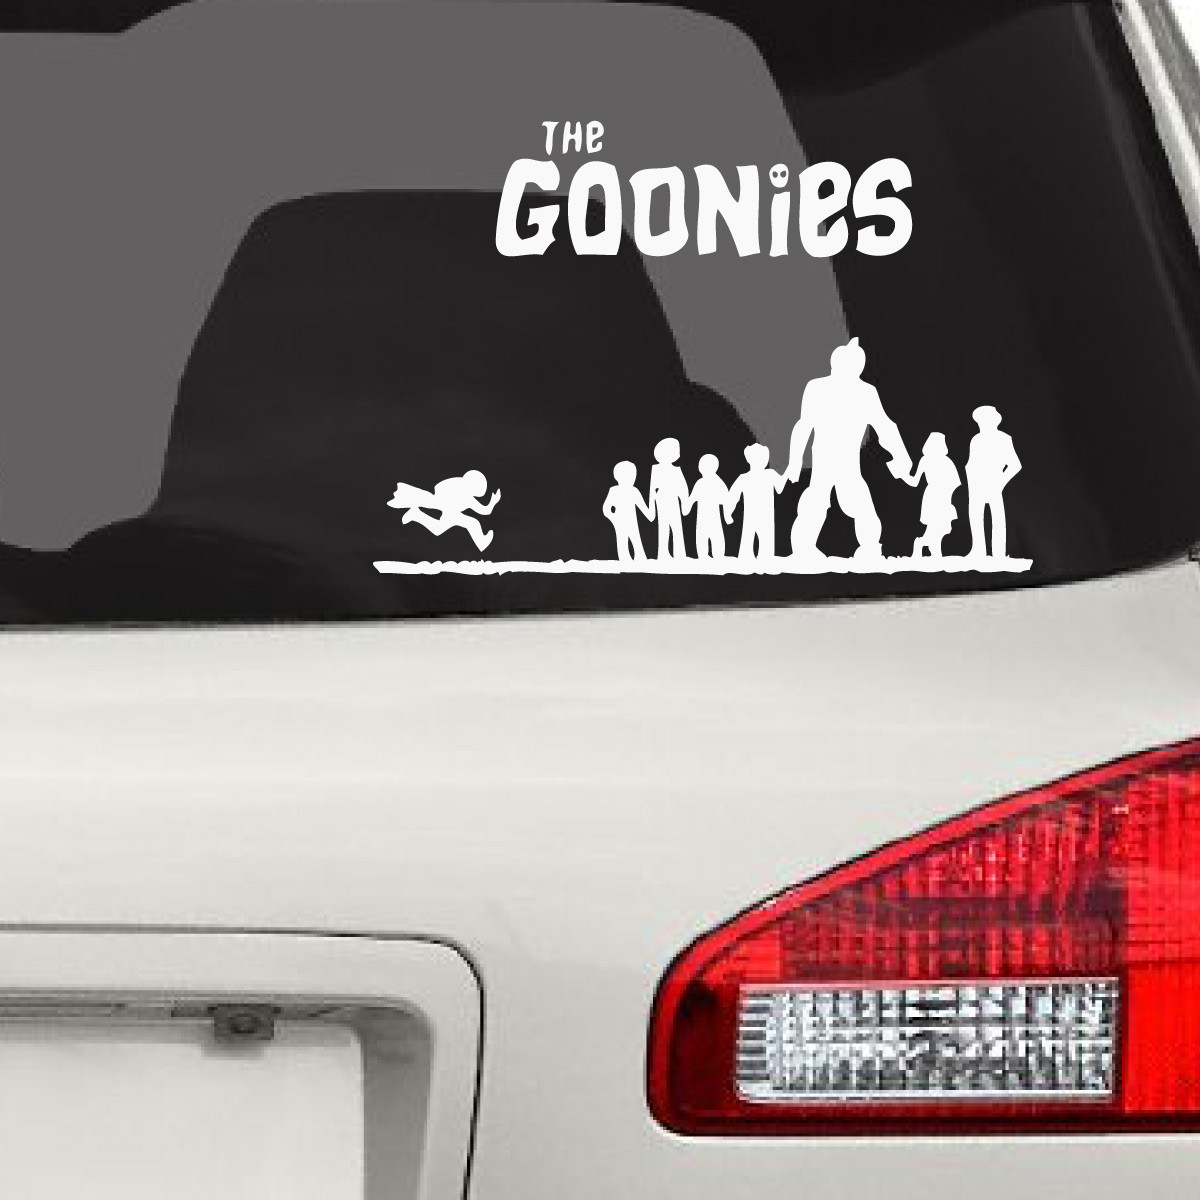 The goonies car decal price 11 99 http d3d71ba2asa5oz cloudfront net 12019661 images 0095